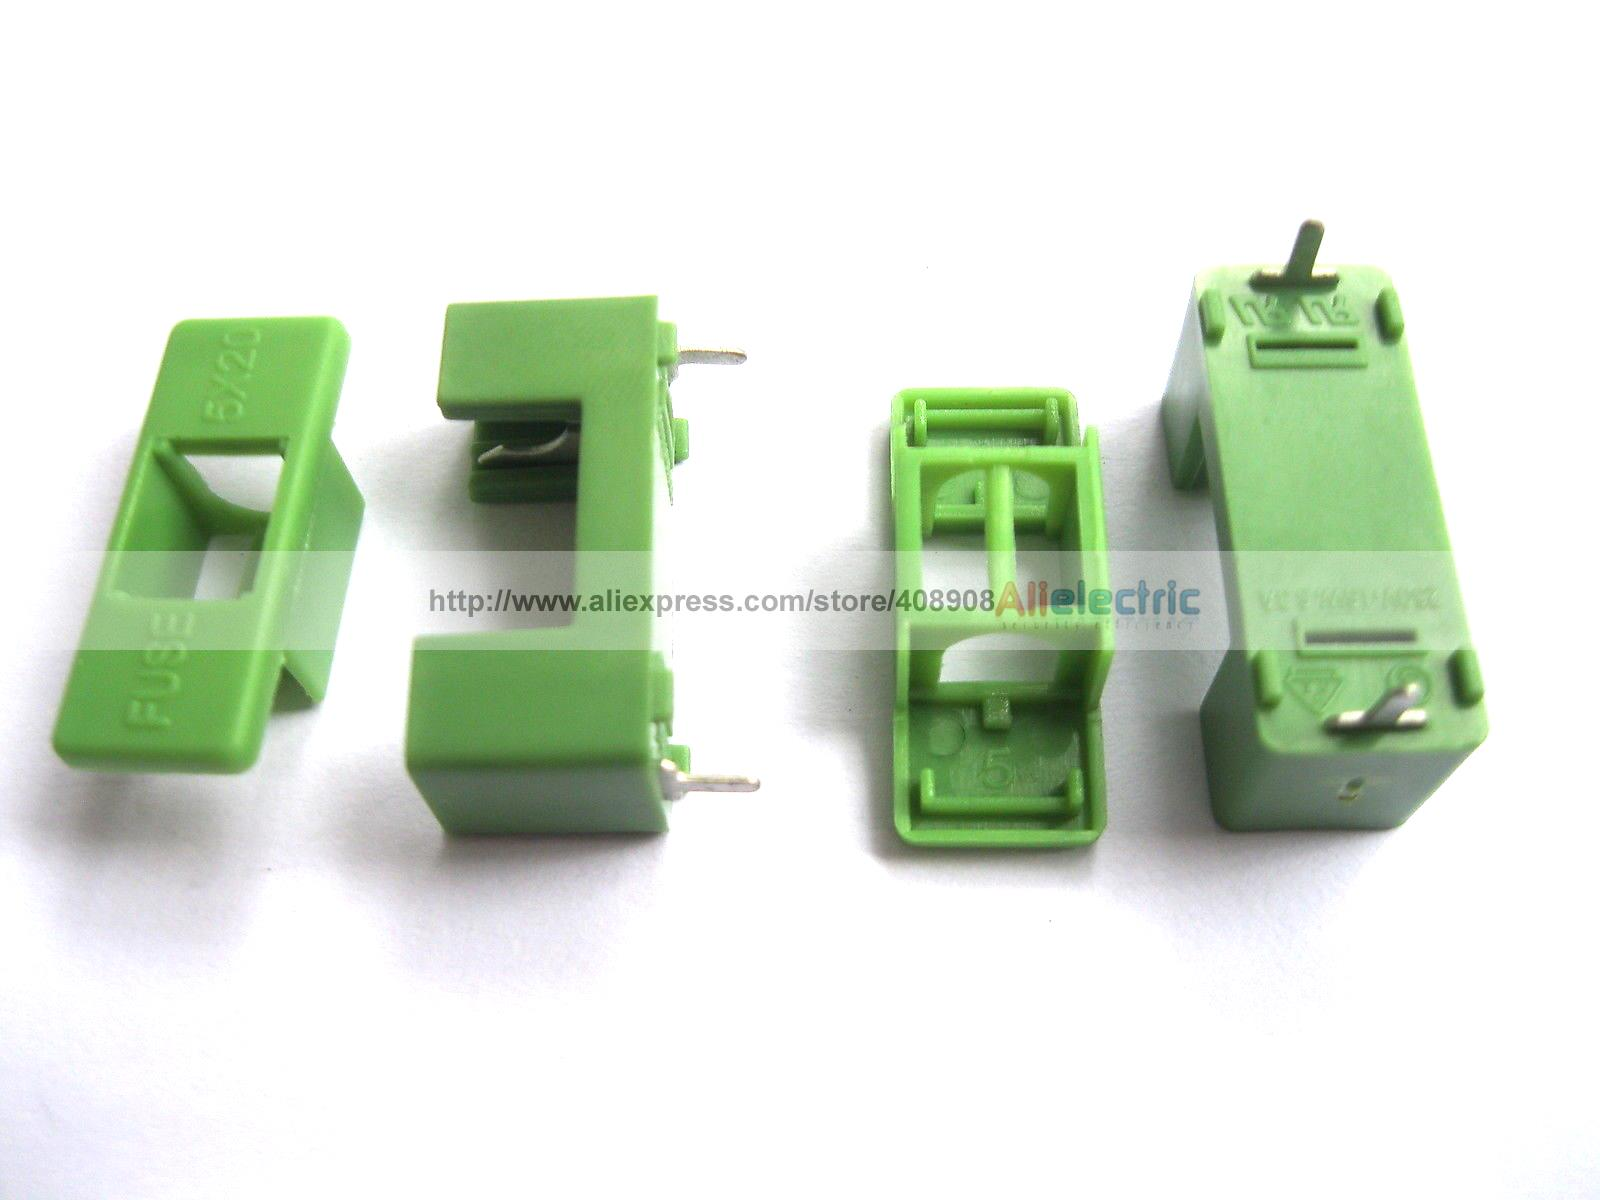 100 Pcs PTF 7 DIP Fuse Holder 6 3A 250V Used for 5x20 Green Color ostin базовые джинсы super skinny